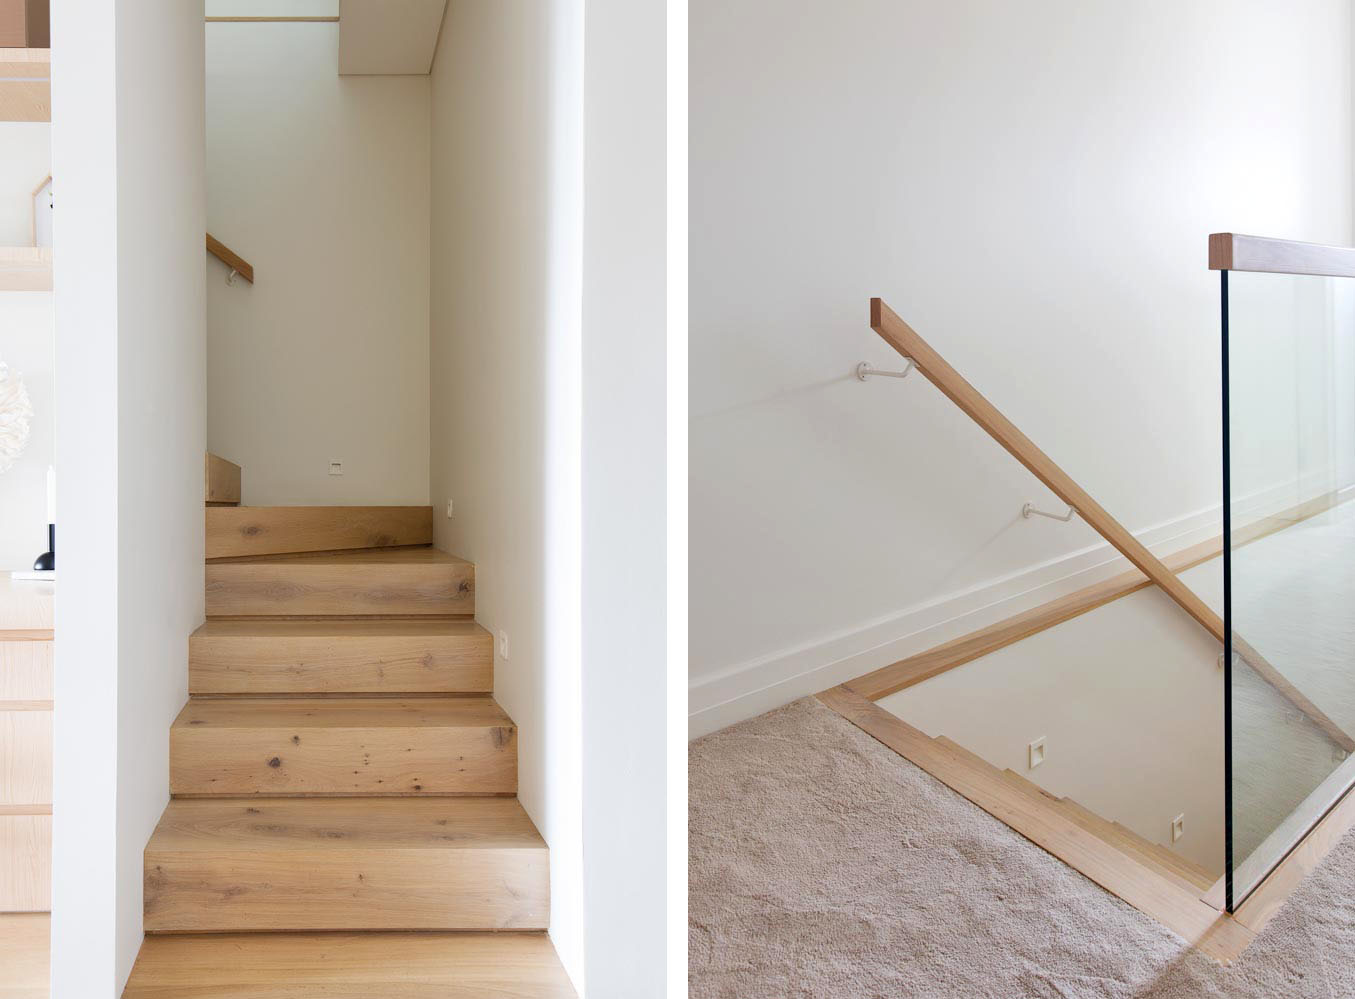 5_AKD_quirk_S_Stairs detail.jpg